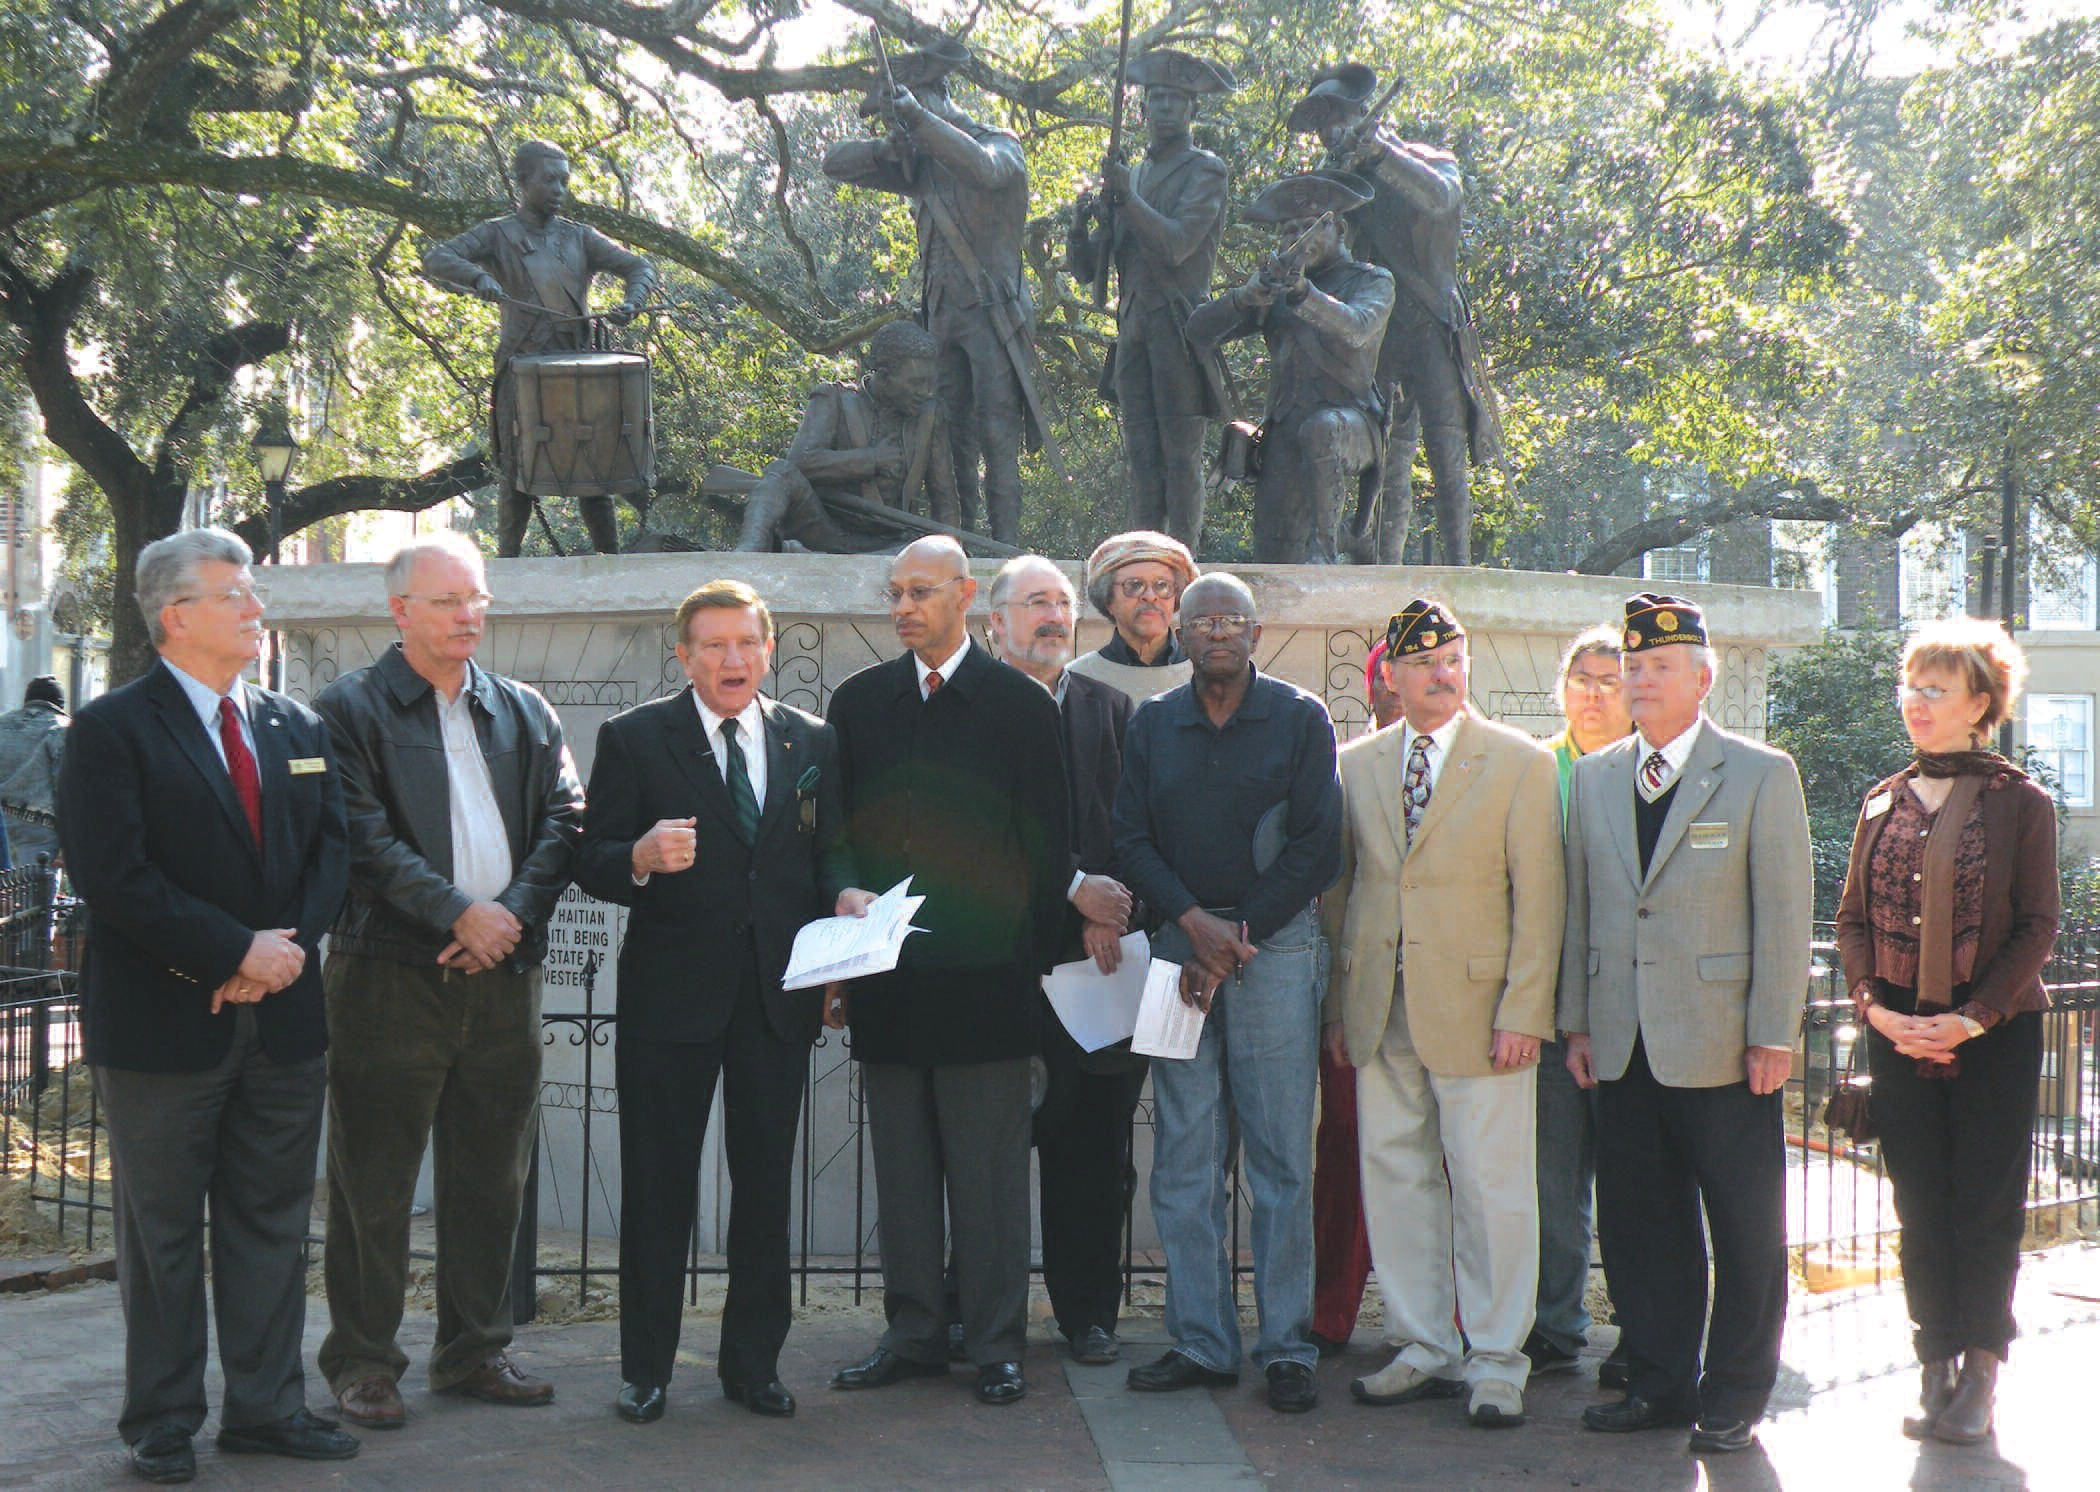 City Leaders stand in front of the Haitian Monument to announce Savannah Responds efforts to help the people of Haiti